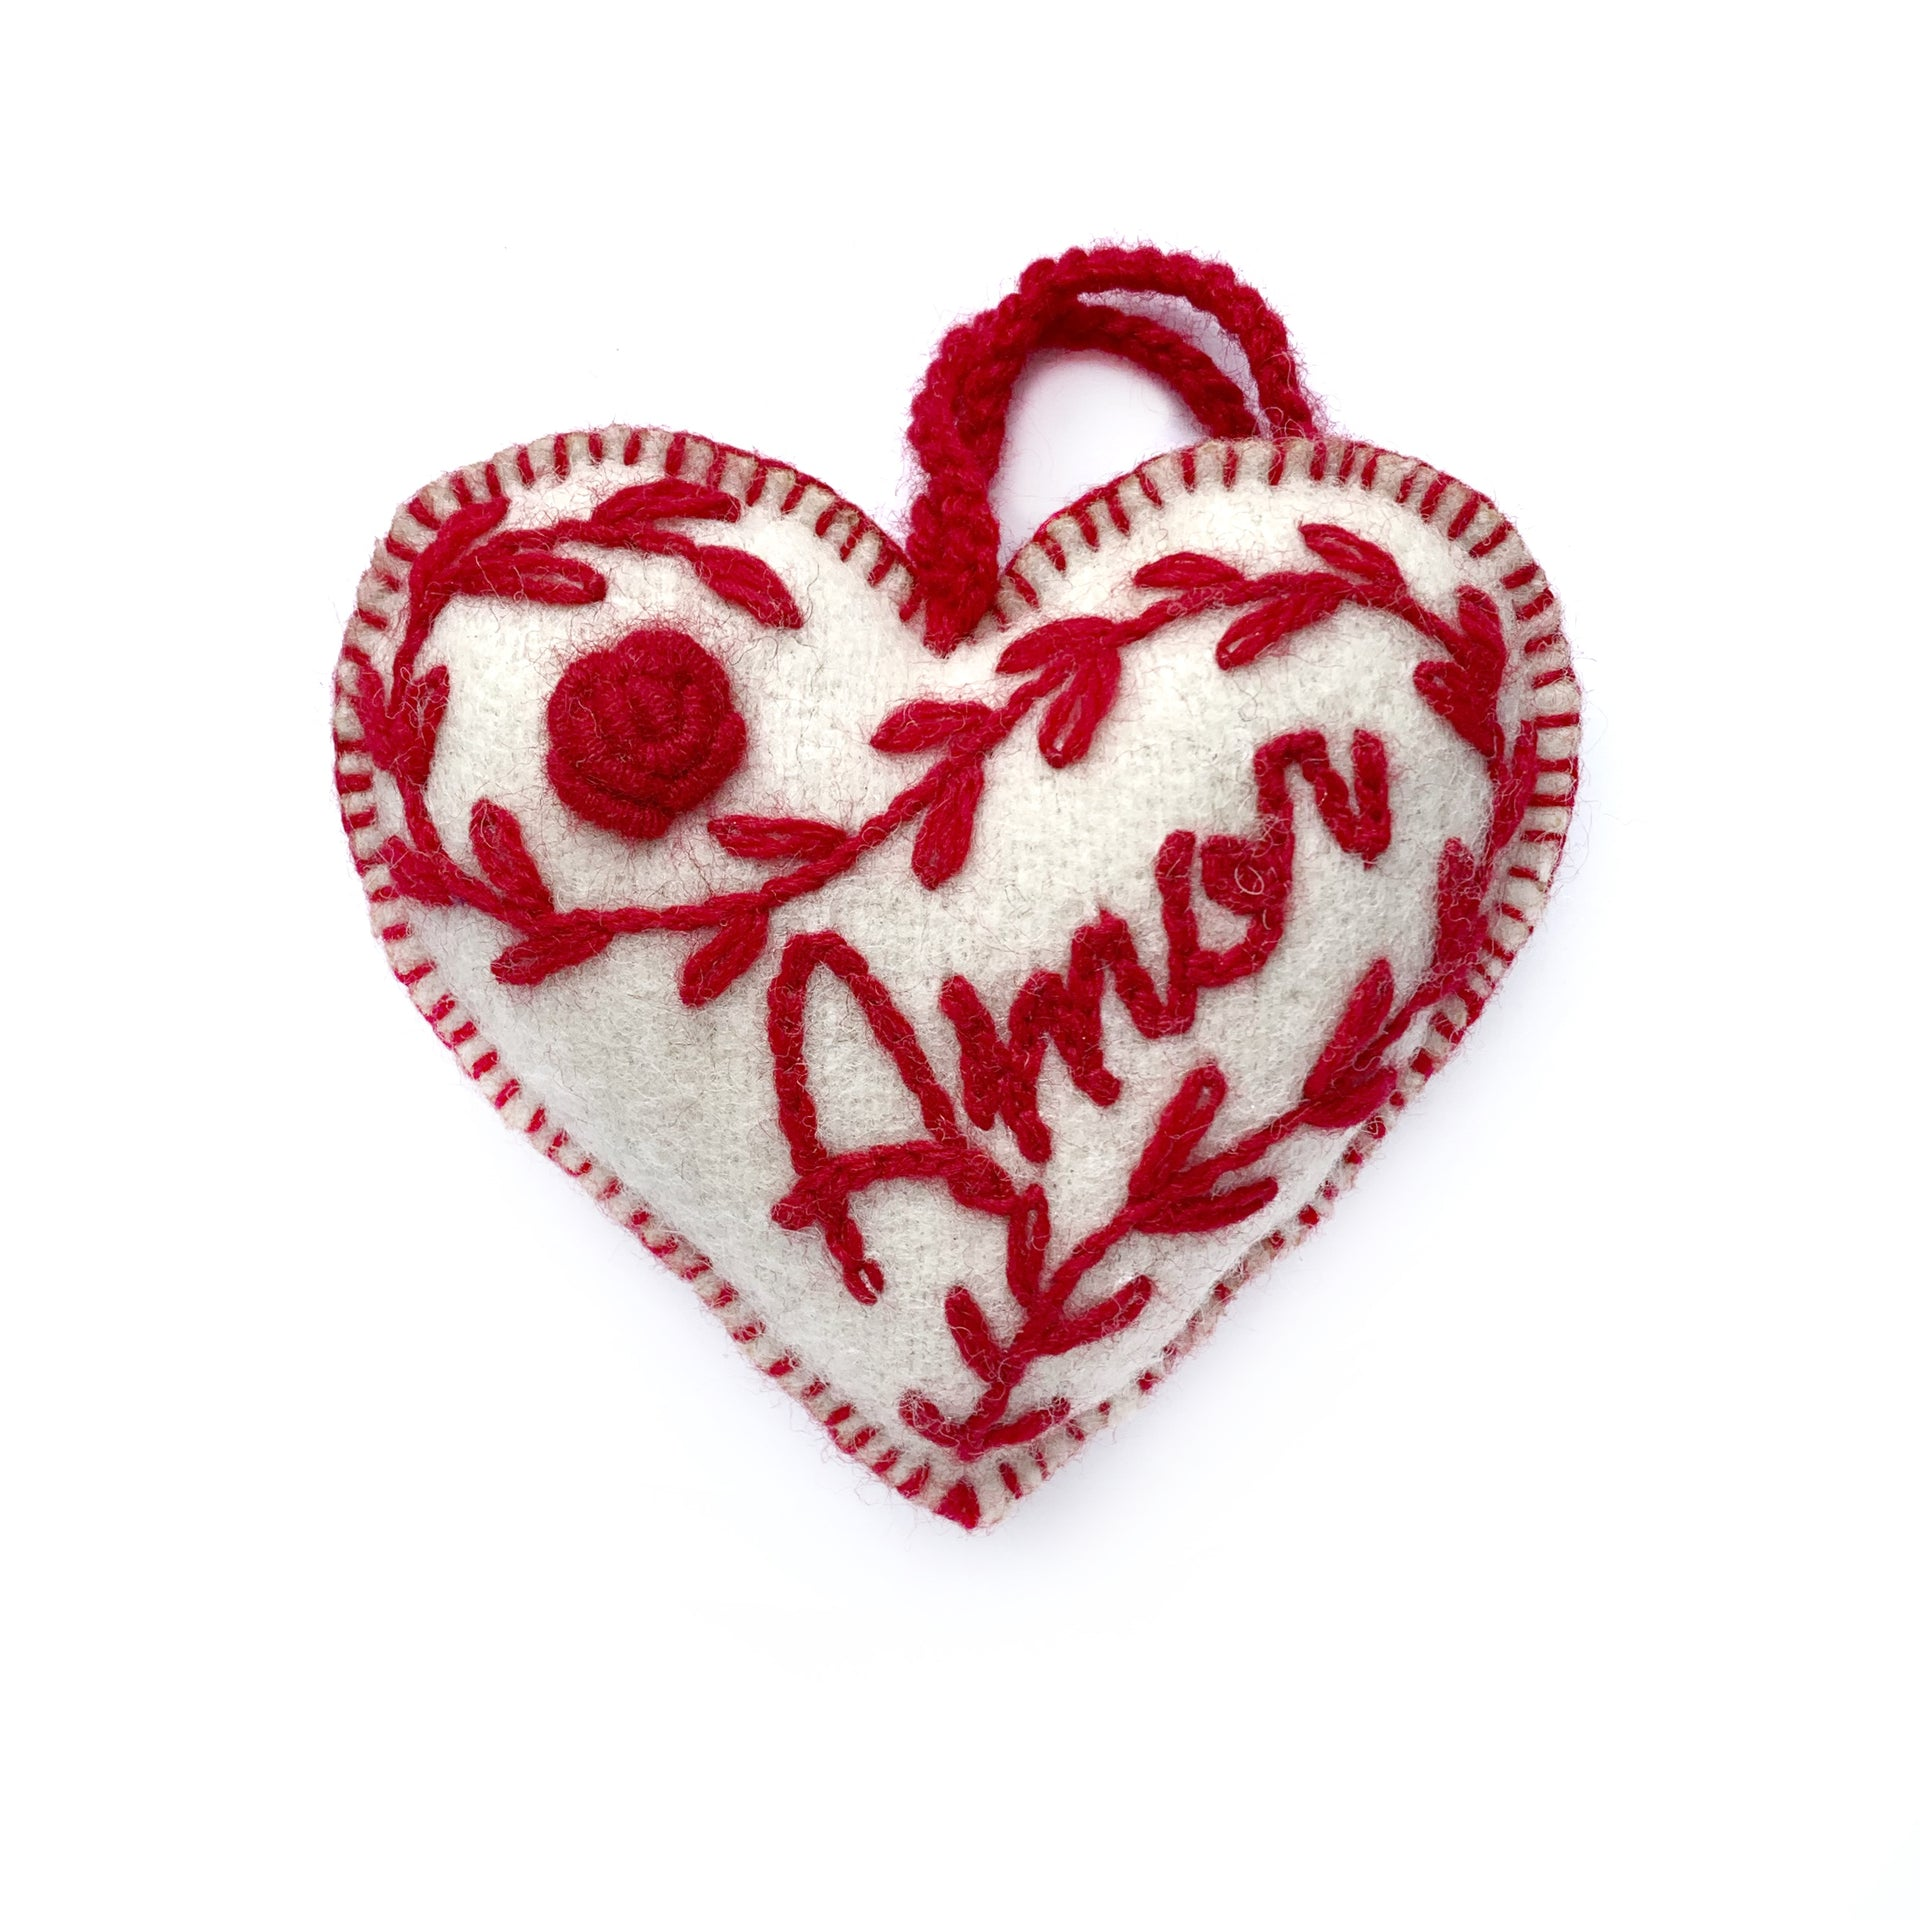 AMOR Heart Valentine's Ornament, Embroidered Wool